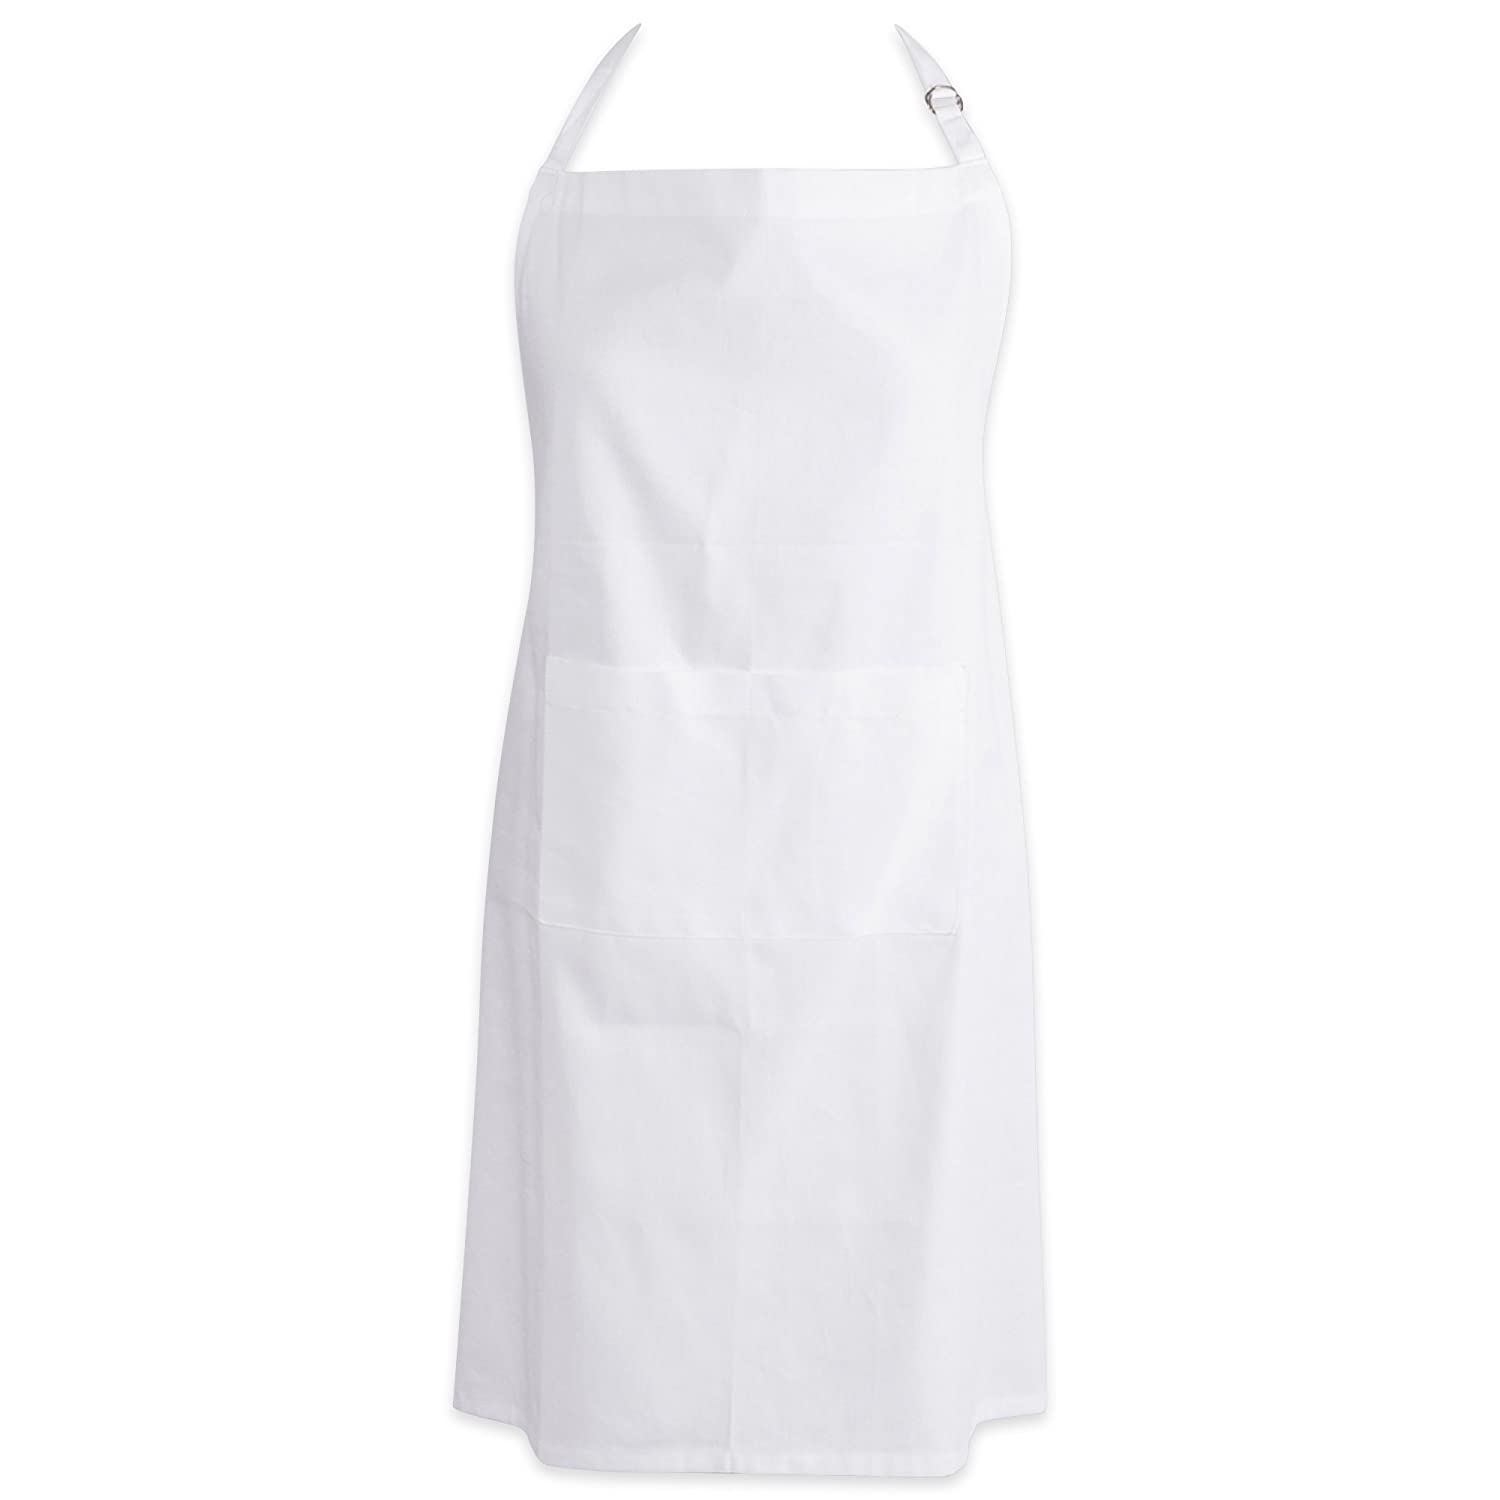 """DII Cotton Adjustable Plus Size Chef Apron with Pockets and Extra Long Ties, 32 x 38"""", Oversized Extra-Large Men & Women Bib Apron for Cooking, Baking, Crafting, Gardening, BBQ-White"""